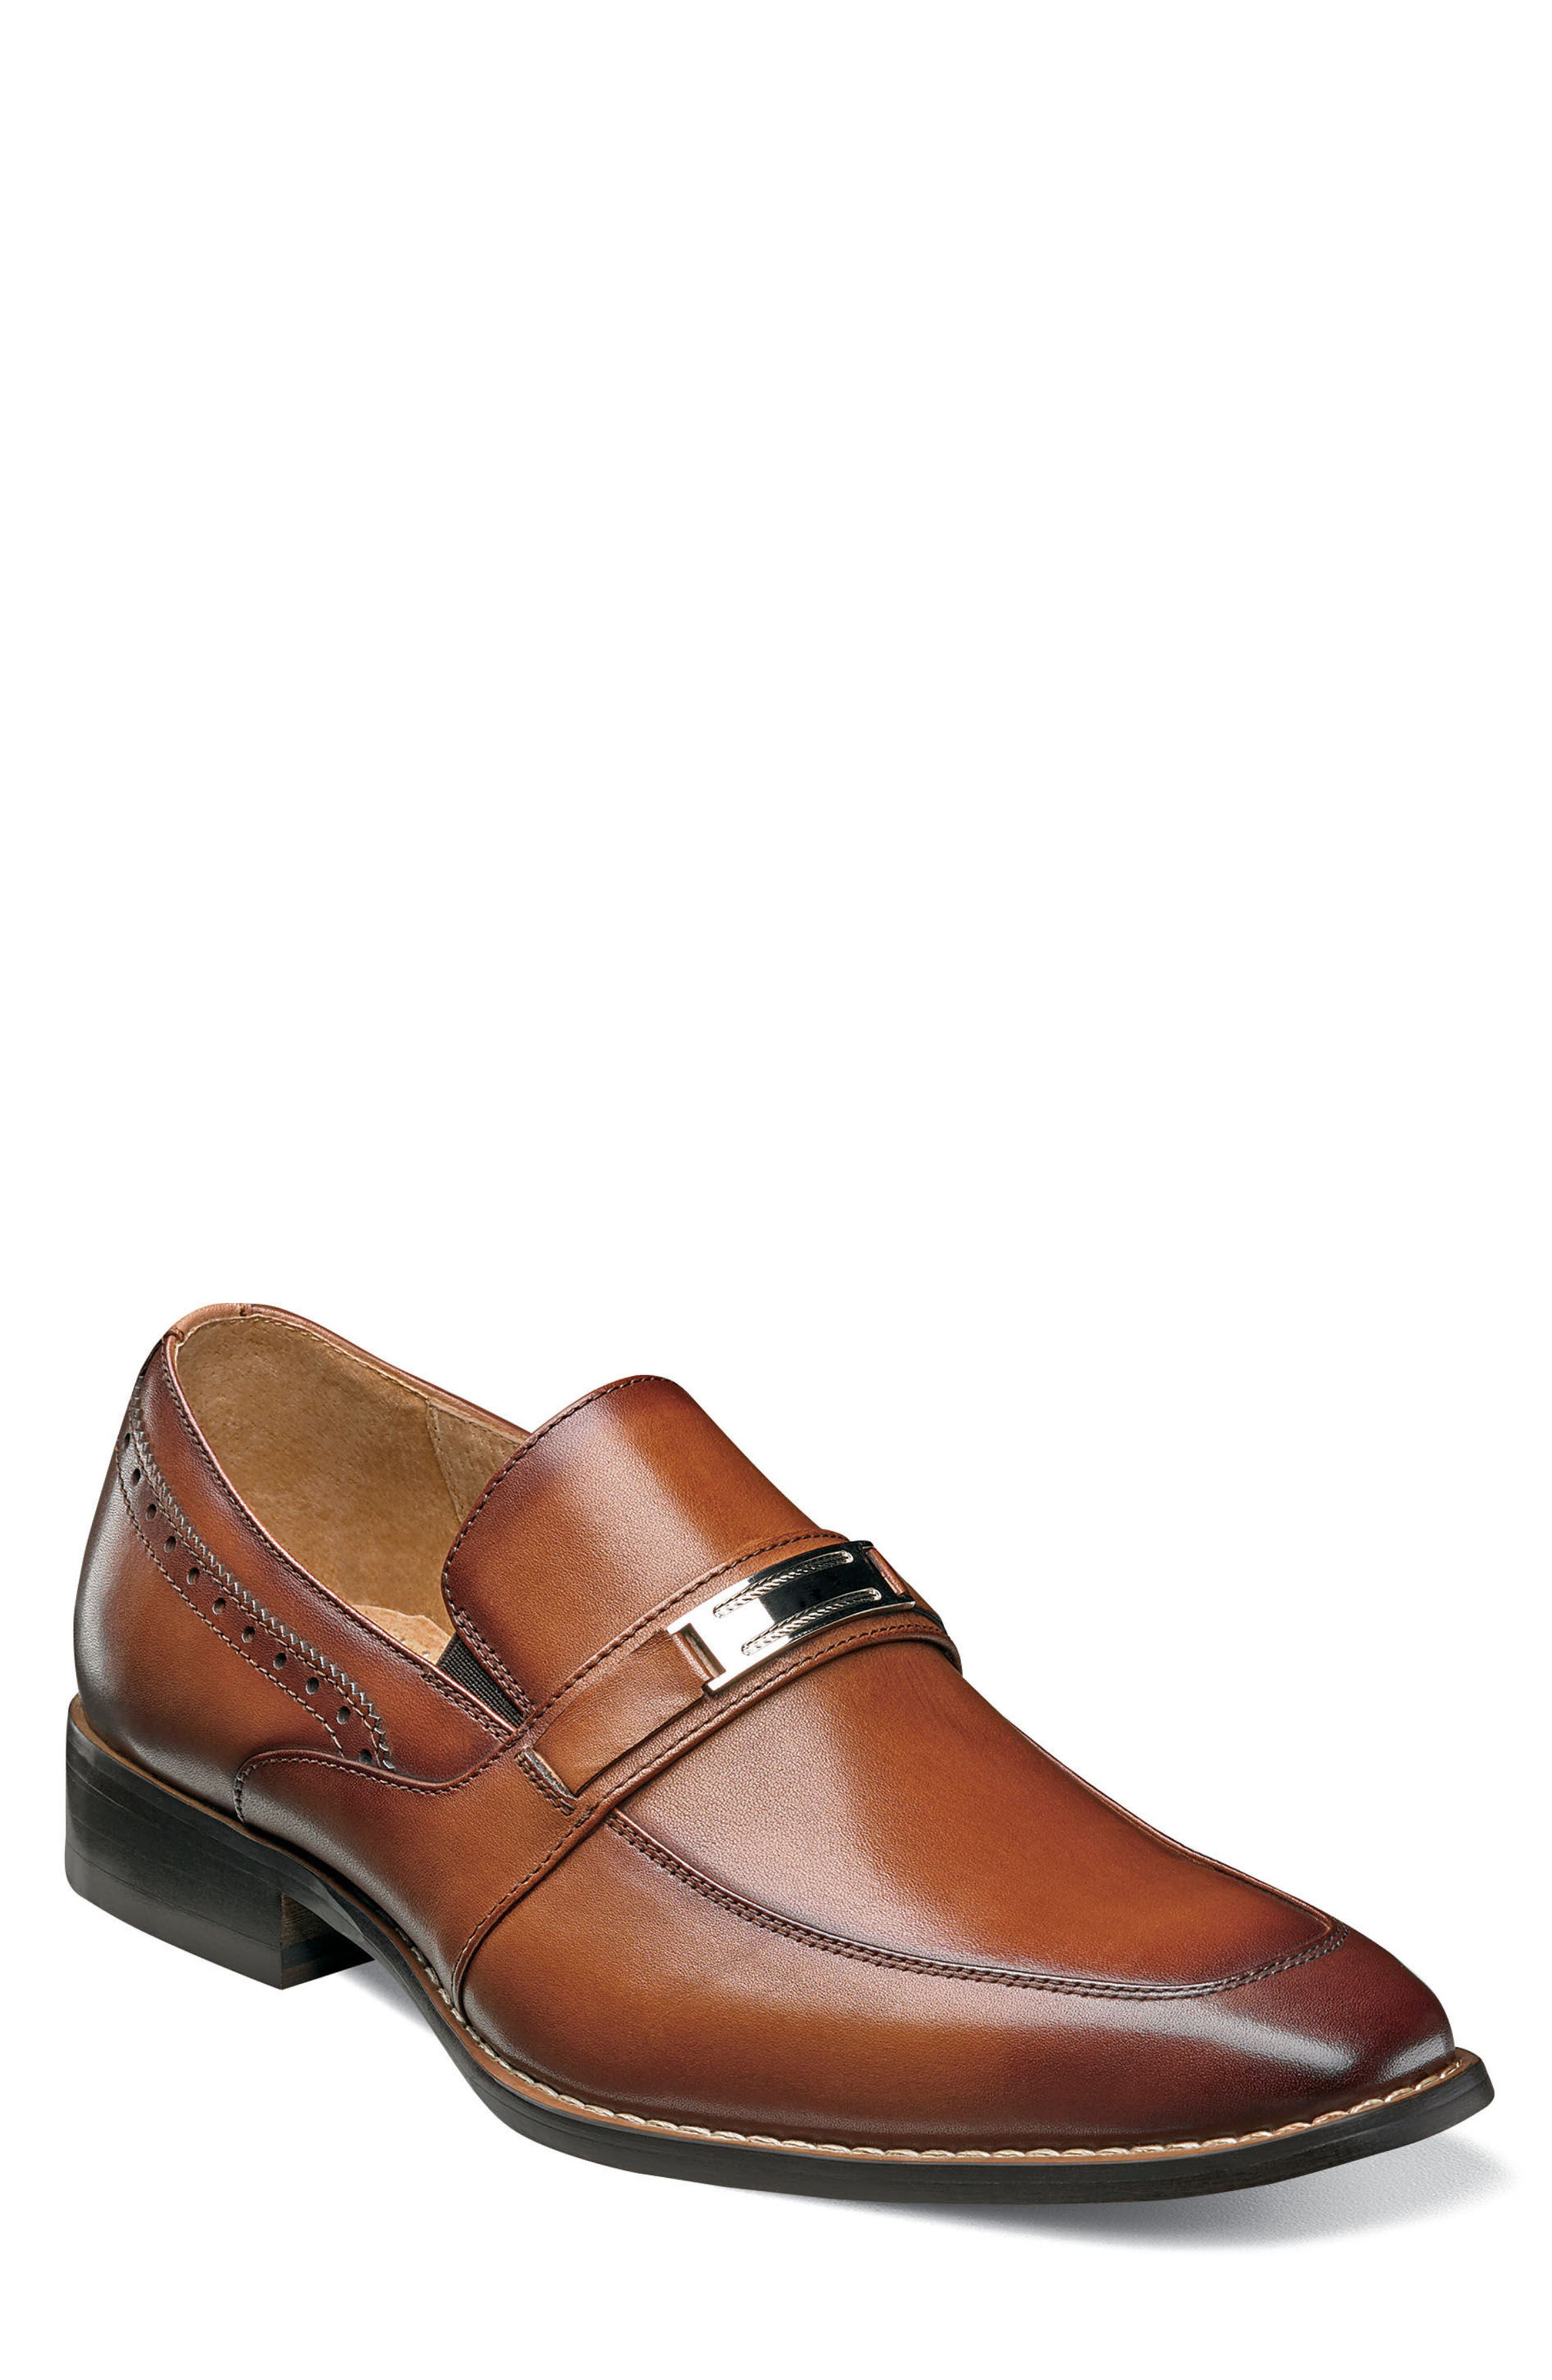 Shaw Bit Loafer,                             Main thumbnail 1, color,                             201